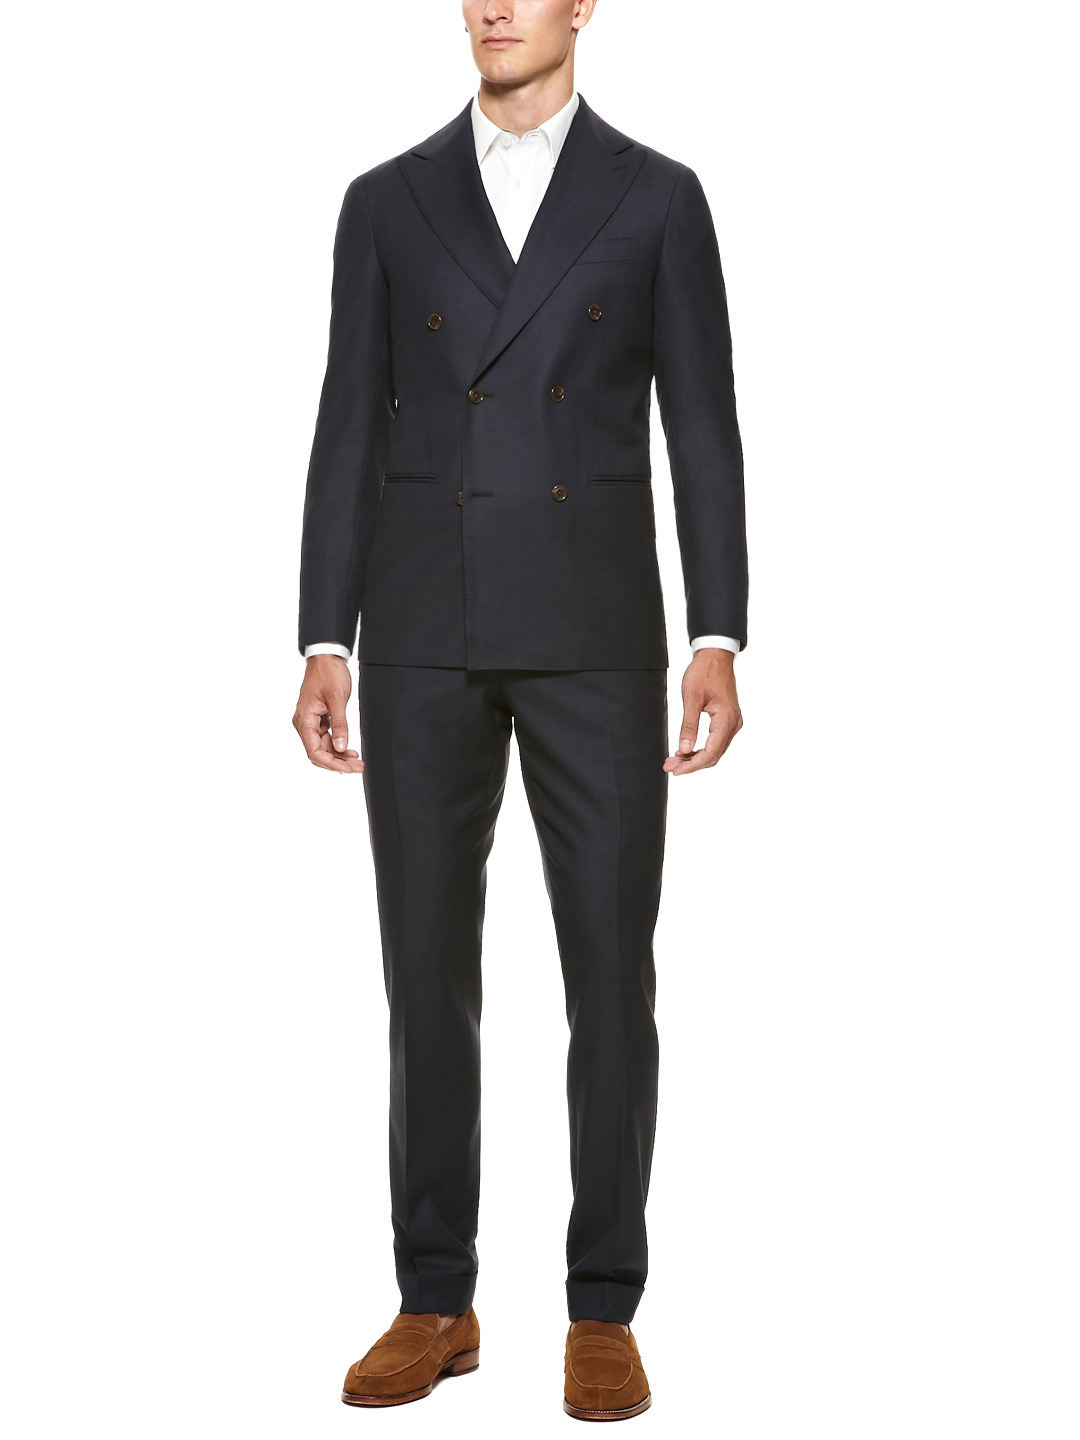 OUR PICK OF THE WEEK- Suitsupply x Park & Bond double breasted suit Already a well documented part of the European suiting scene, Suitsupply recently laid its assault bare on the North Atlantic, with stores in NYC, Chicago and one slated in D.C later this year. Working from a principal of affordability, high quality and individuality, its no wonder that the Amsterdam based company has captured the eye of menswear blogger heavyweights, GQ and yes, even Park & Bond. Its fitting then that our pick of the week is this EXCLUSIVE collaboration between Park & Bond and Suitsupply: the ultimate double breasted suit under $600. Made with Super 130 wool and genuine horn buttons, this DB suit has all the hallmark details of a Suitsupply product (like features beyond the price point) while benefiting from a design direction from Park & Bond. The fully lined jacket is accompanied by hem cuffed trousers in a handsome drape (complete with partial knee lining), and can be worn in numerous ways that boost the versatility of what at first seems a basic suit. Available now at Park & Bond For Styleternity's full review of Suitsupply, click through here  STYLETERNITY